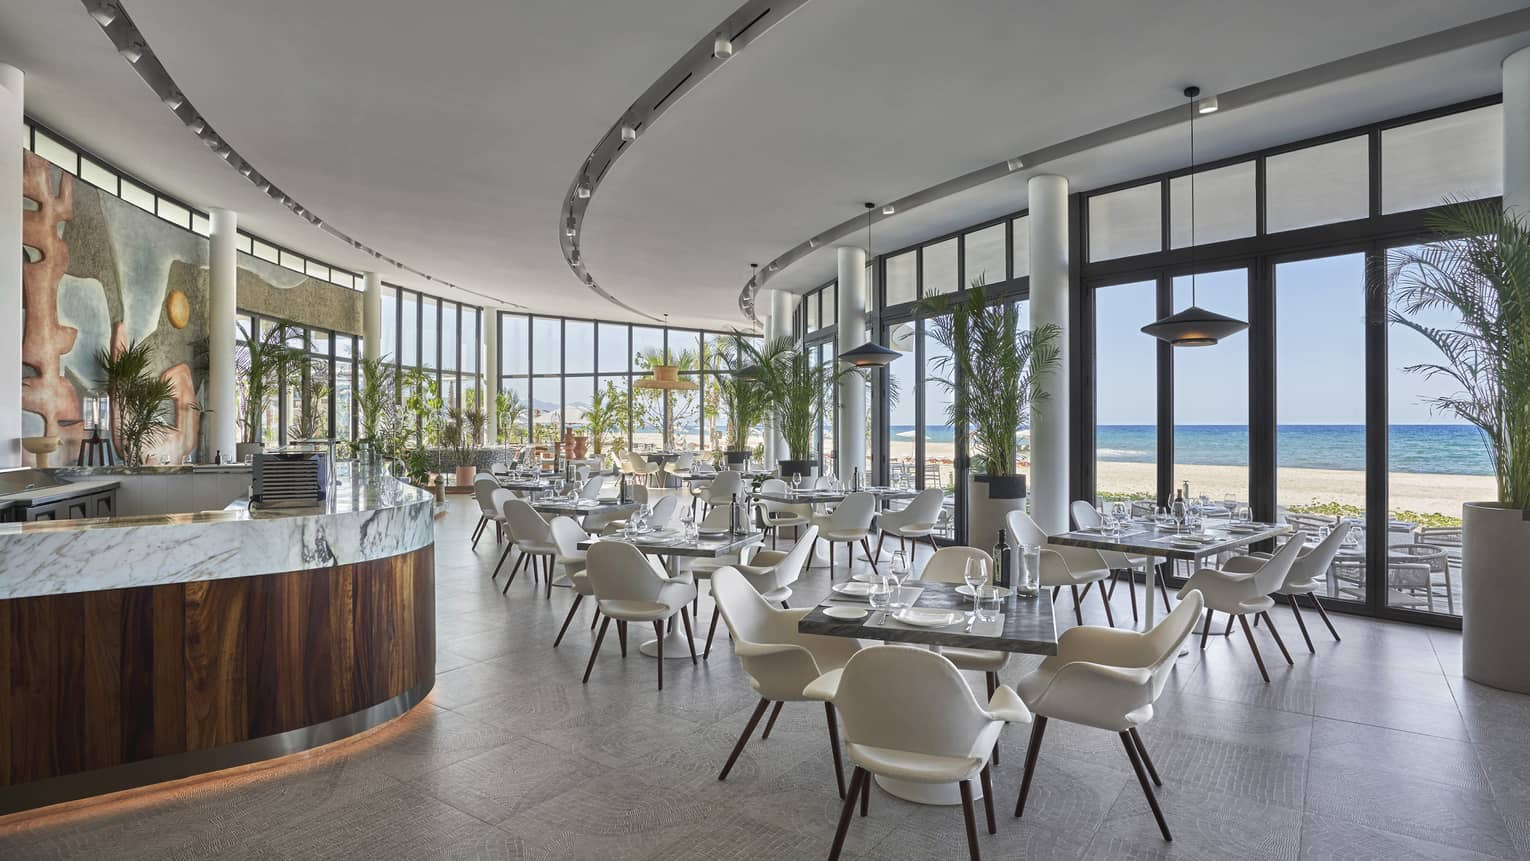 Milos contemporary curved dining room with square tables and white chairs, water views